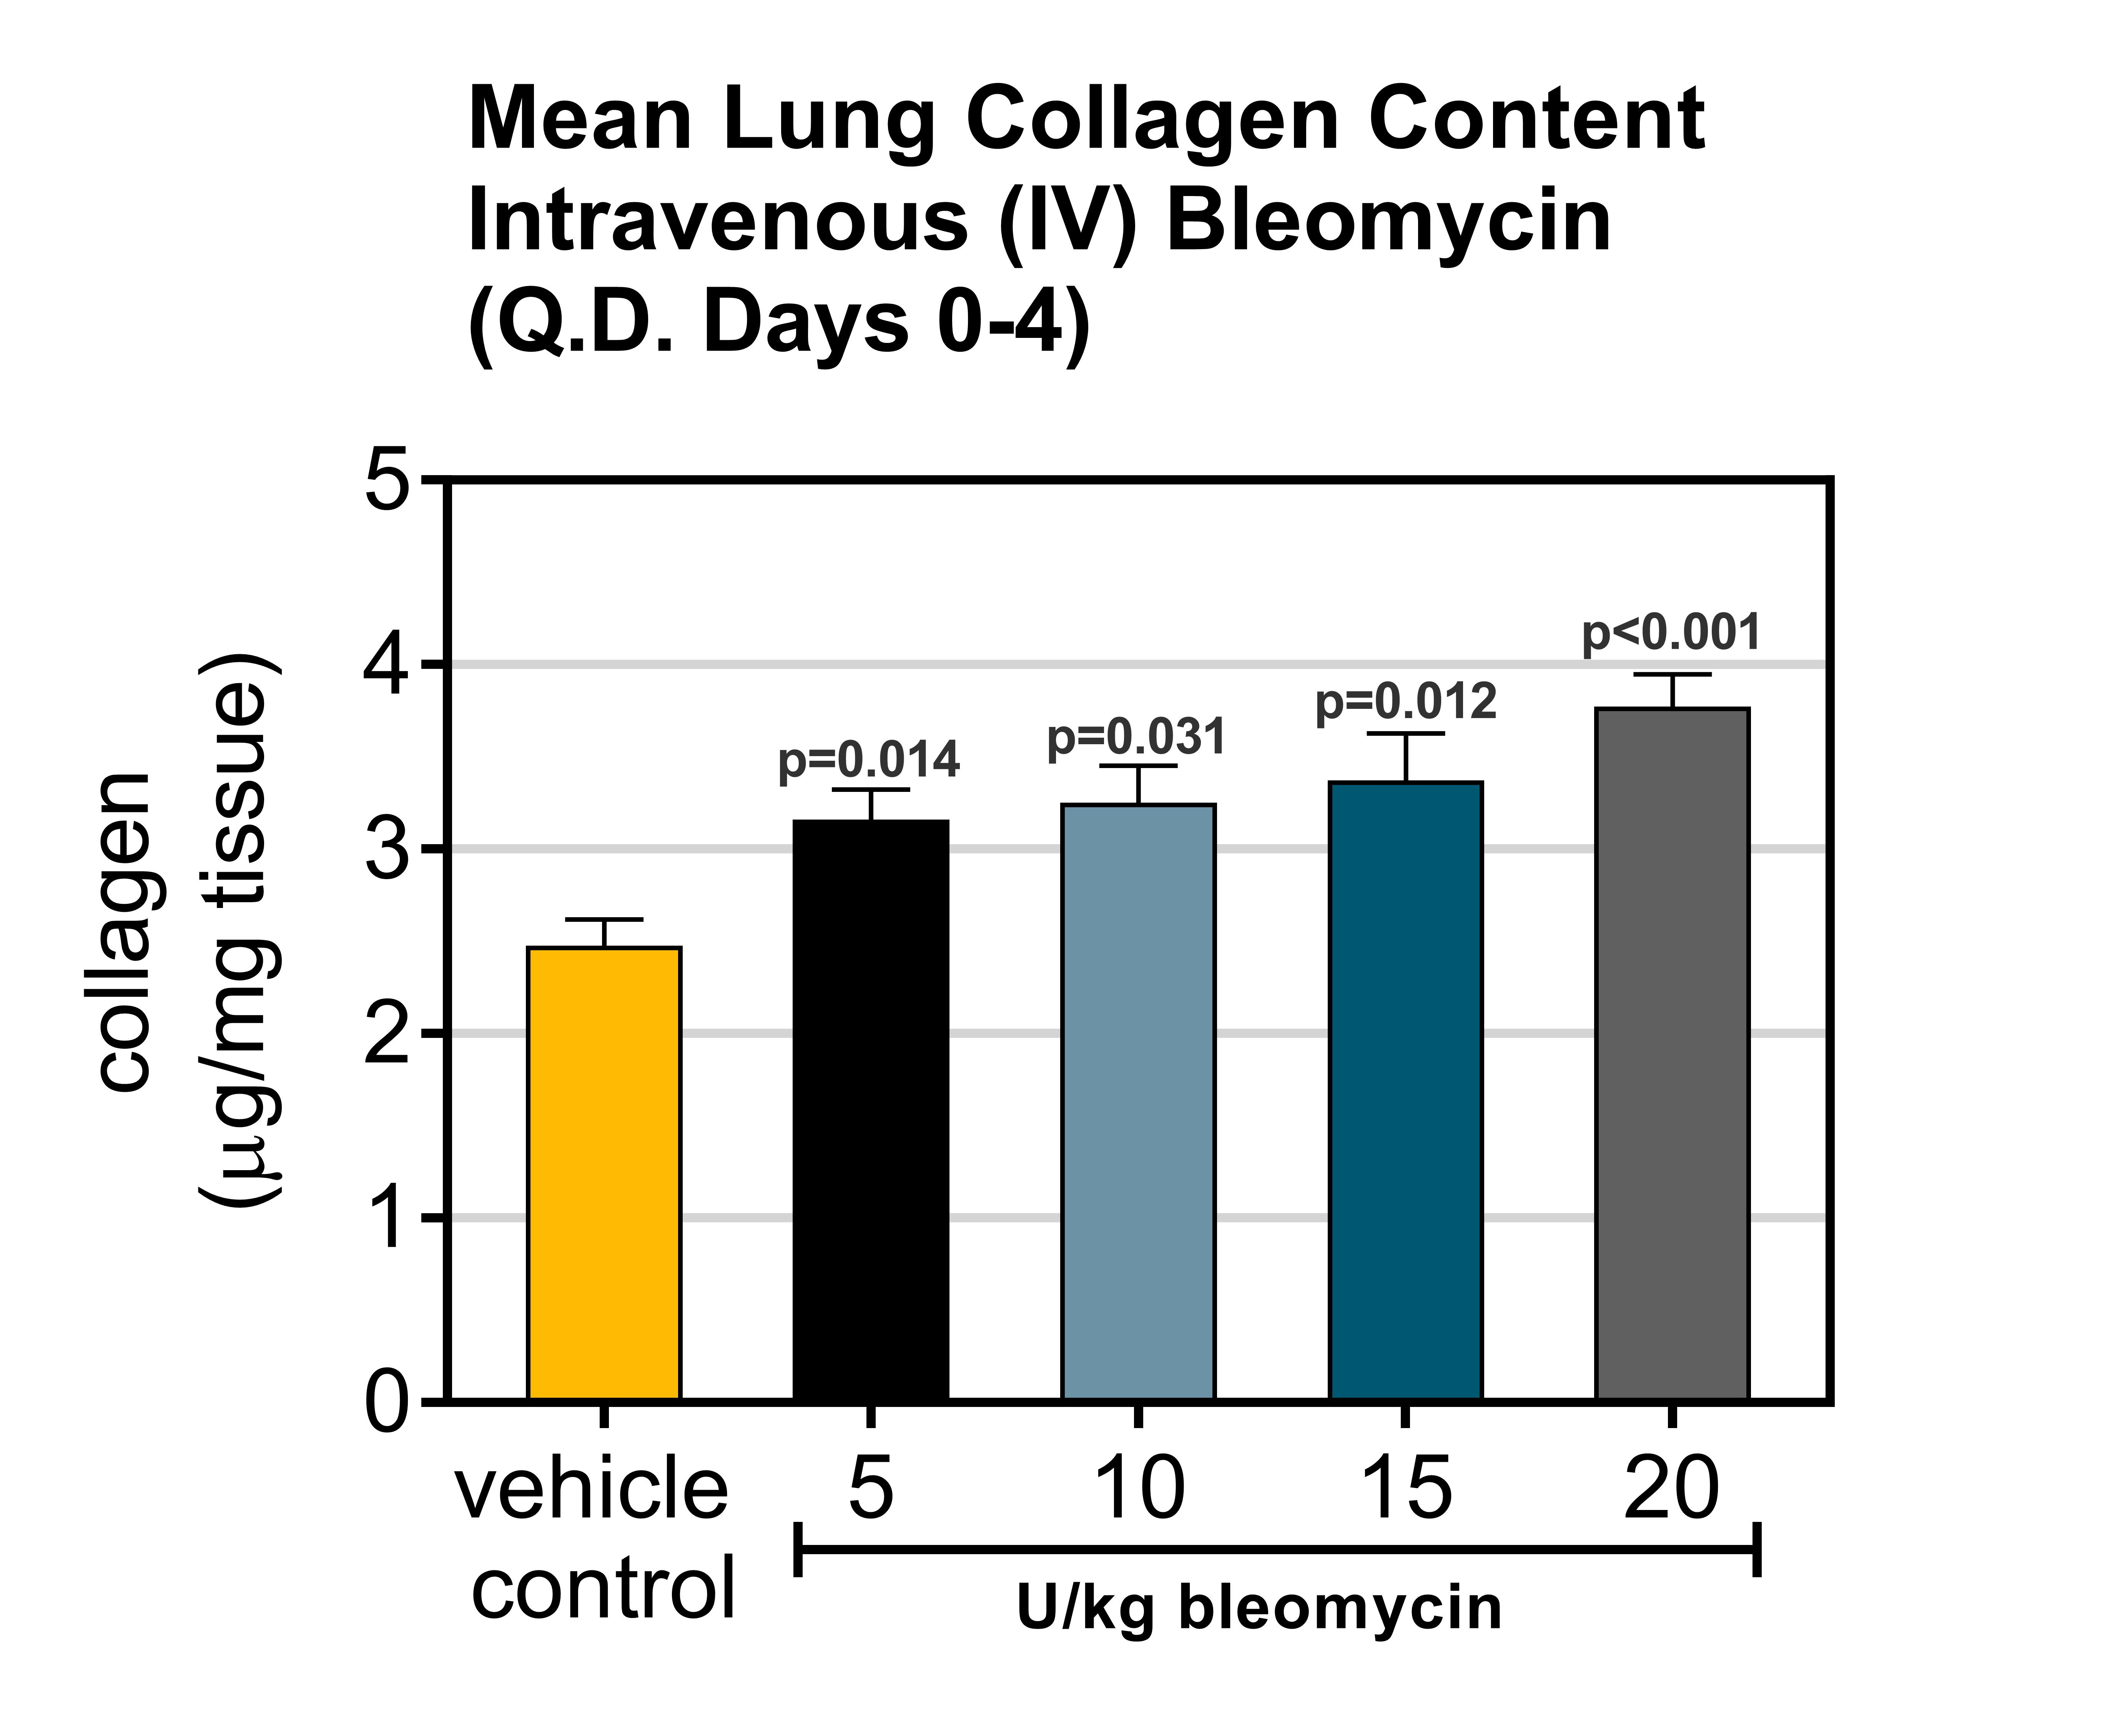 Lung collagen content resulting from intravenous bleomycin exposure